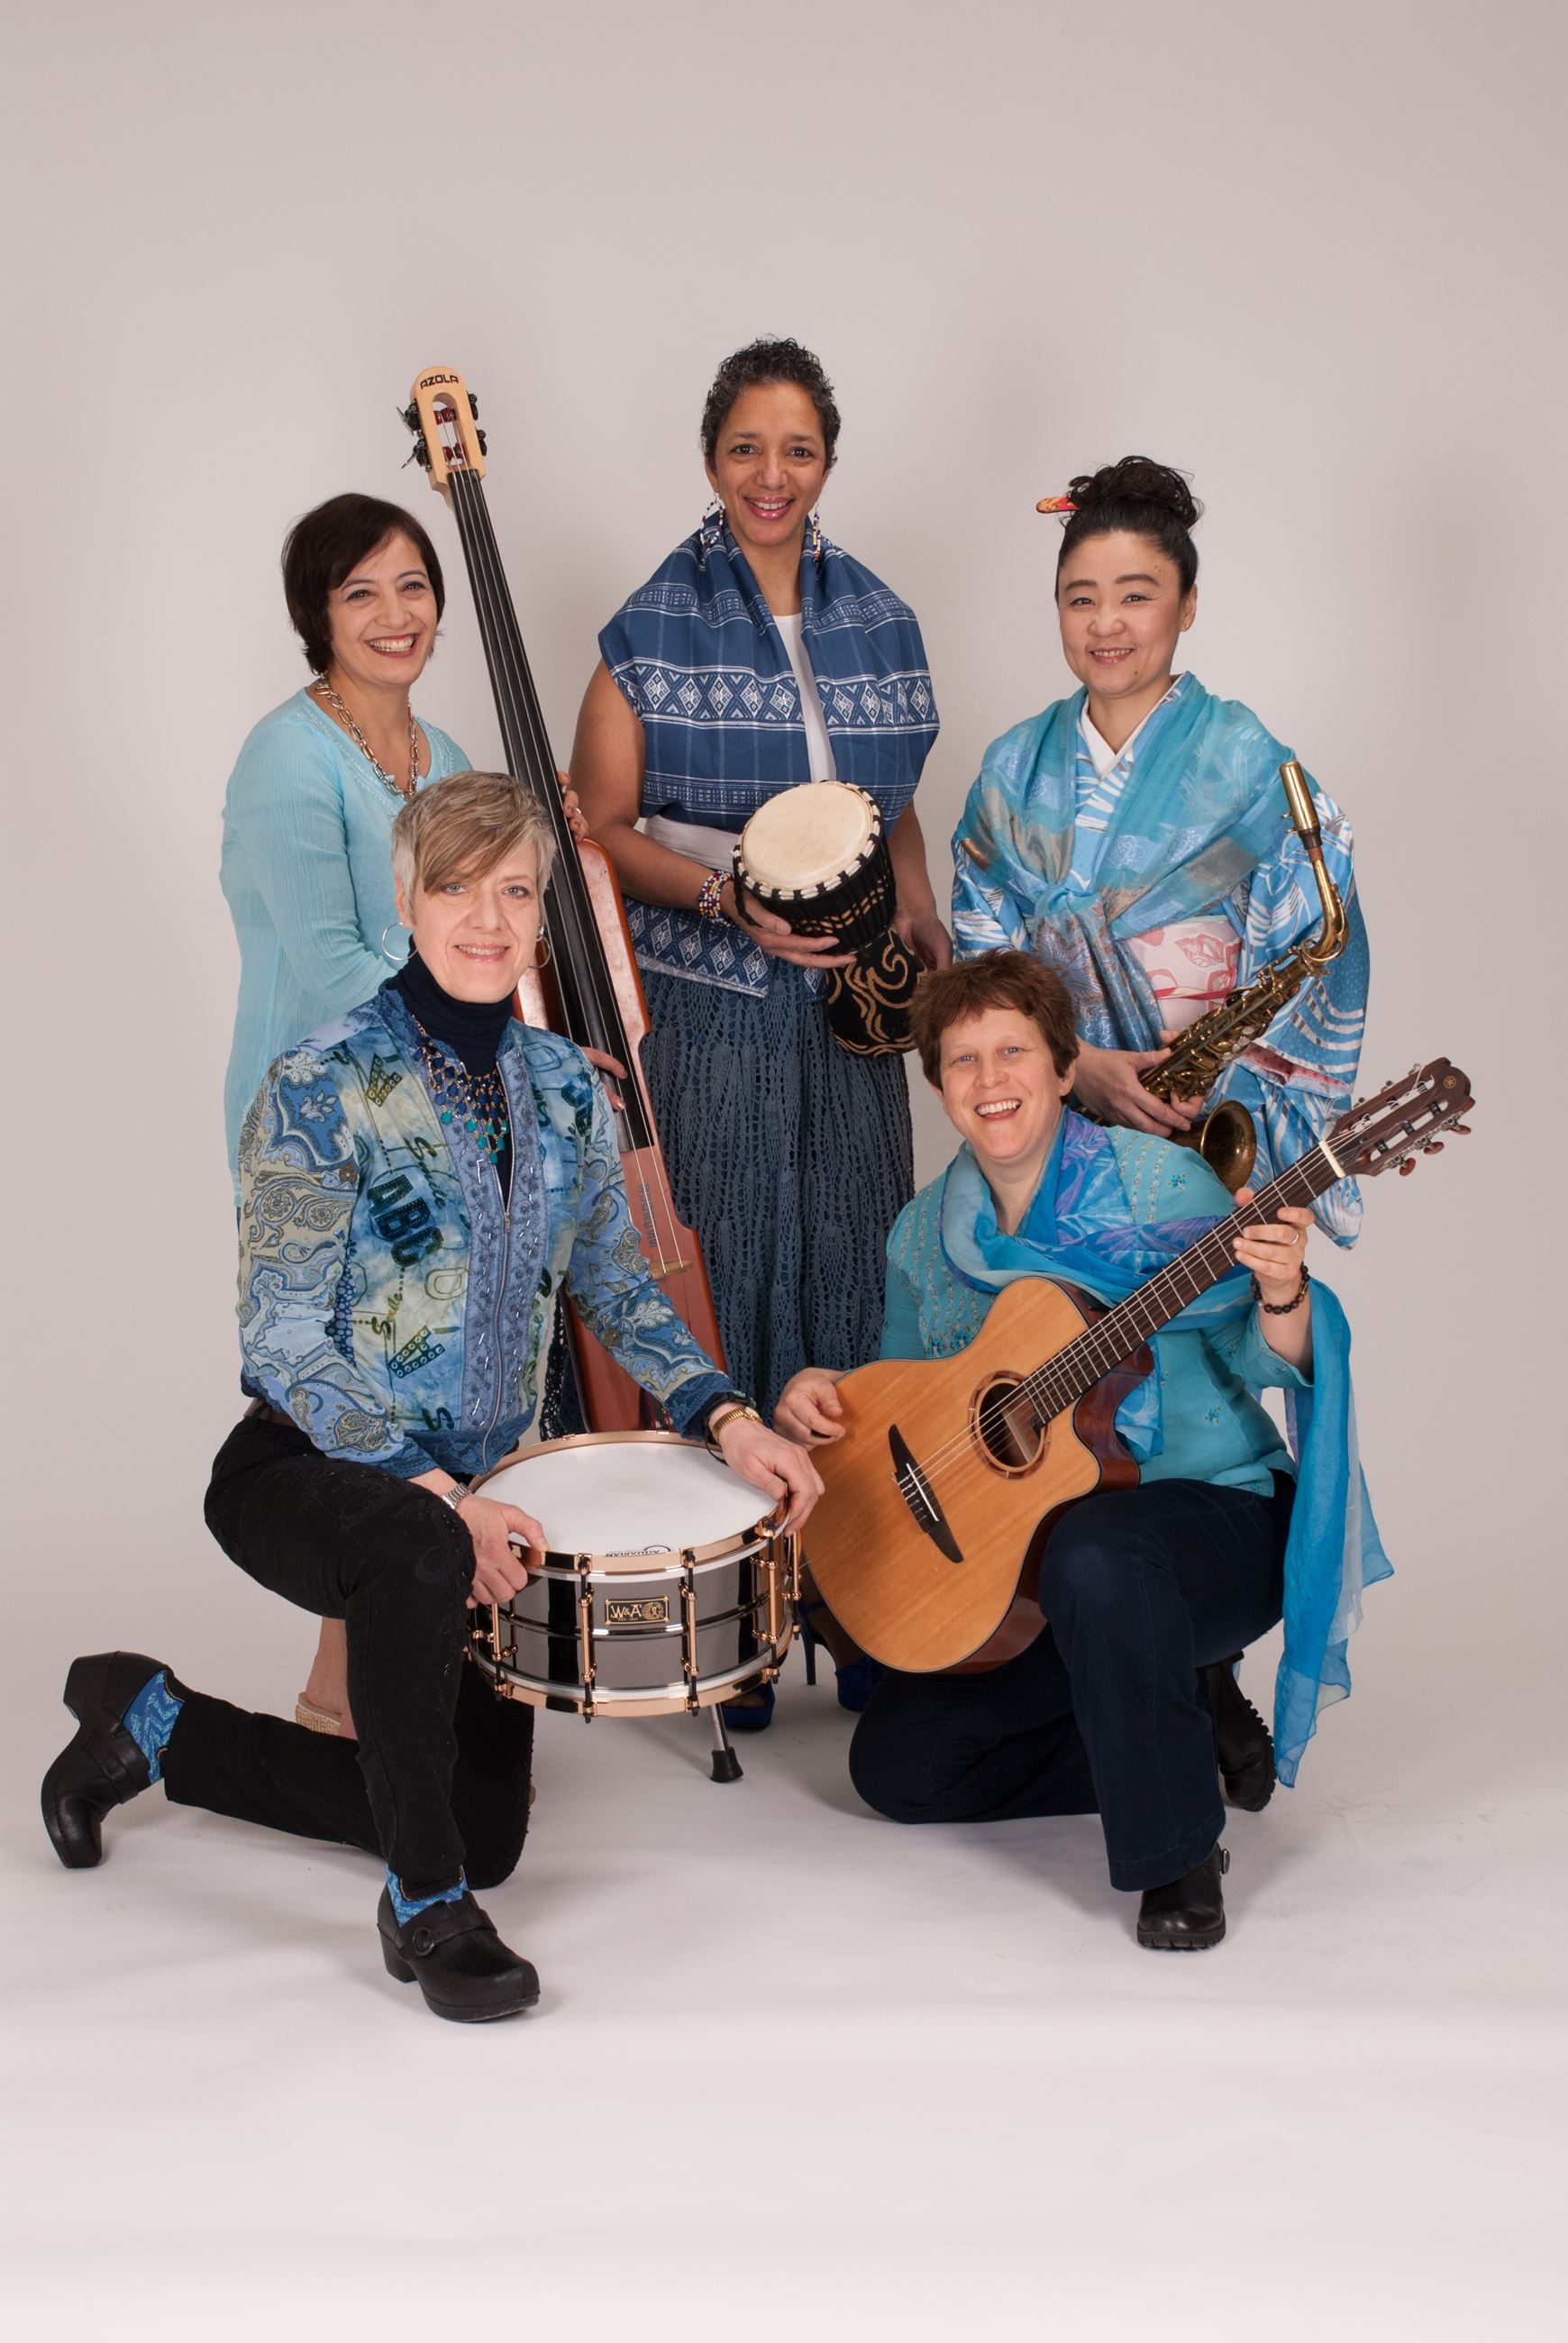 Image of women in blue holding instruments